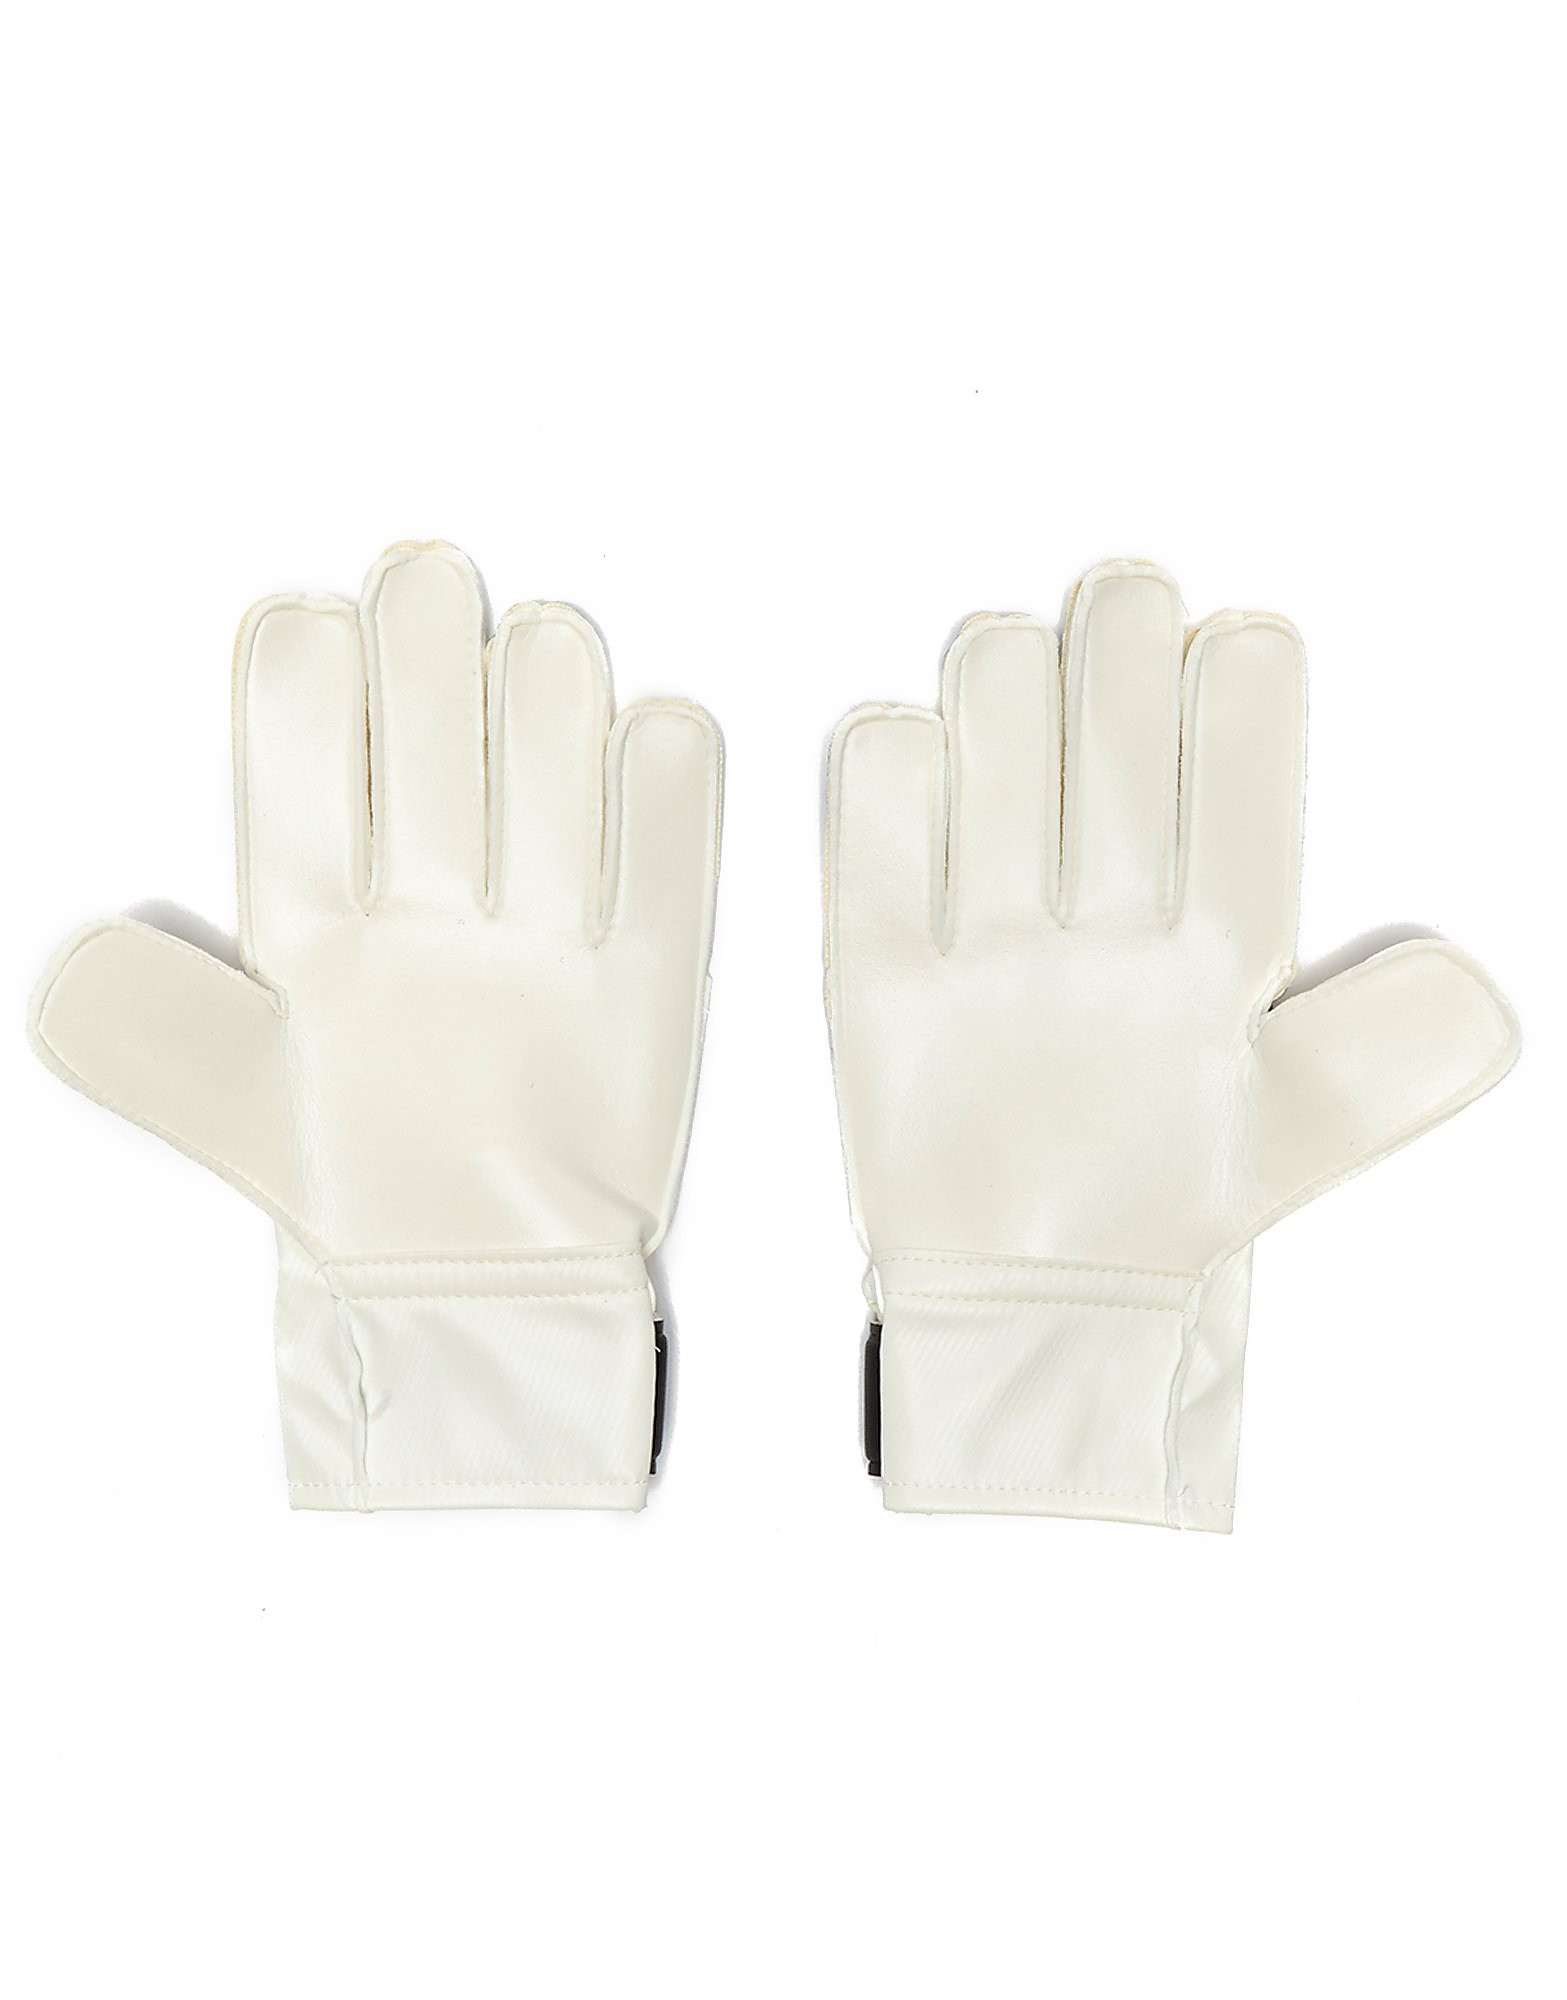 adidas Classic Lite Goalkeeper Gloves